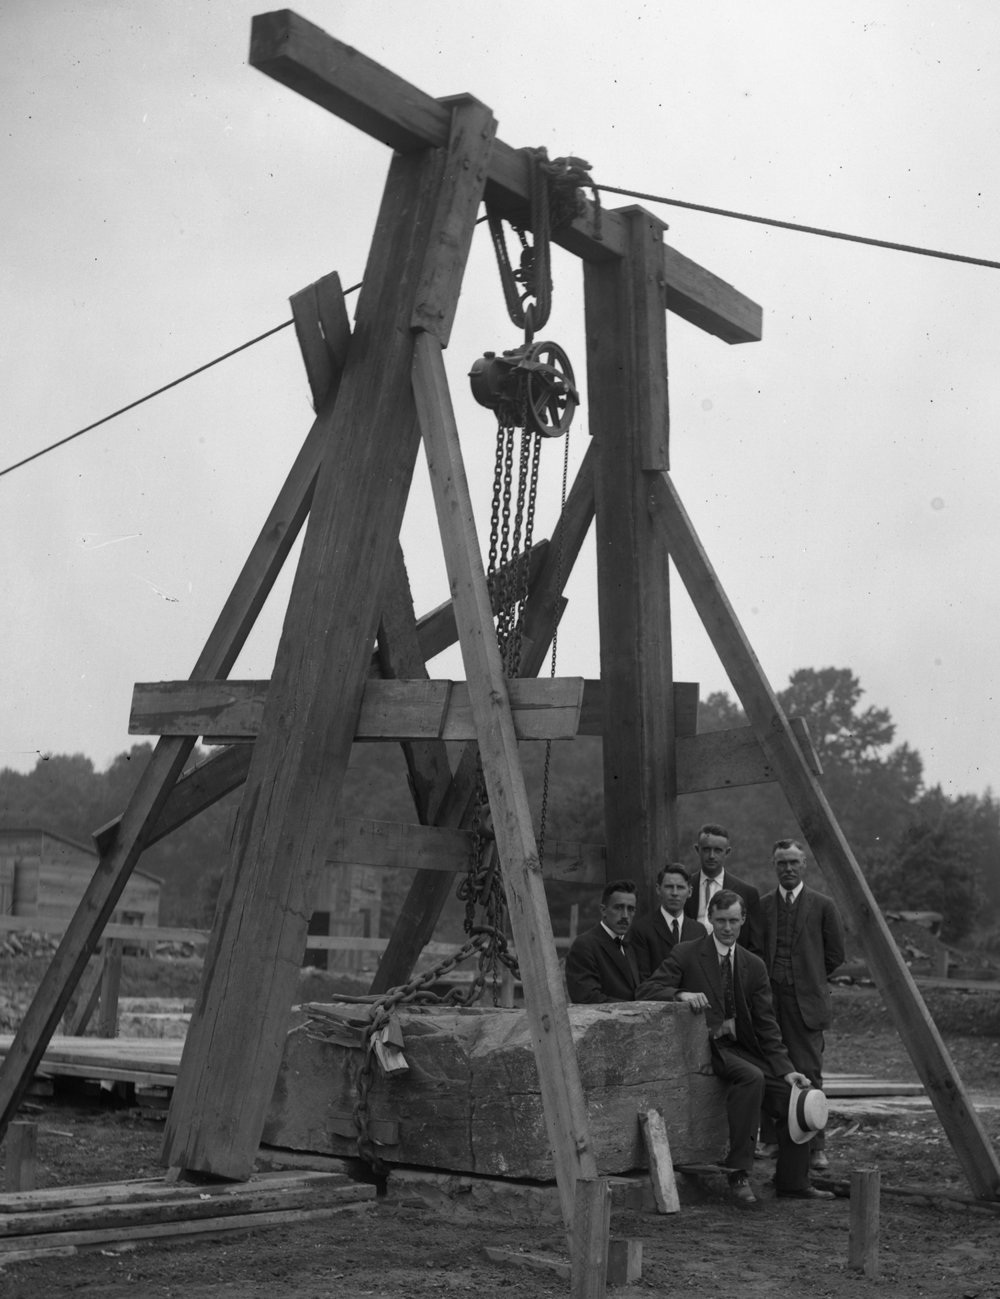 Figure 3: A large stationary frame was constructed with a block and tackle to lower the seven-ton cornerstone during the ceremony. Pictured from left to right are (first row) Raymond Pitcairn; (second row) Edwin T. Asplundh, Robert Tappan, Albert C. Perry, and Pringle Borthwick.